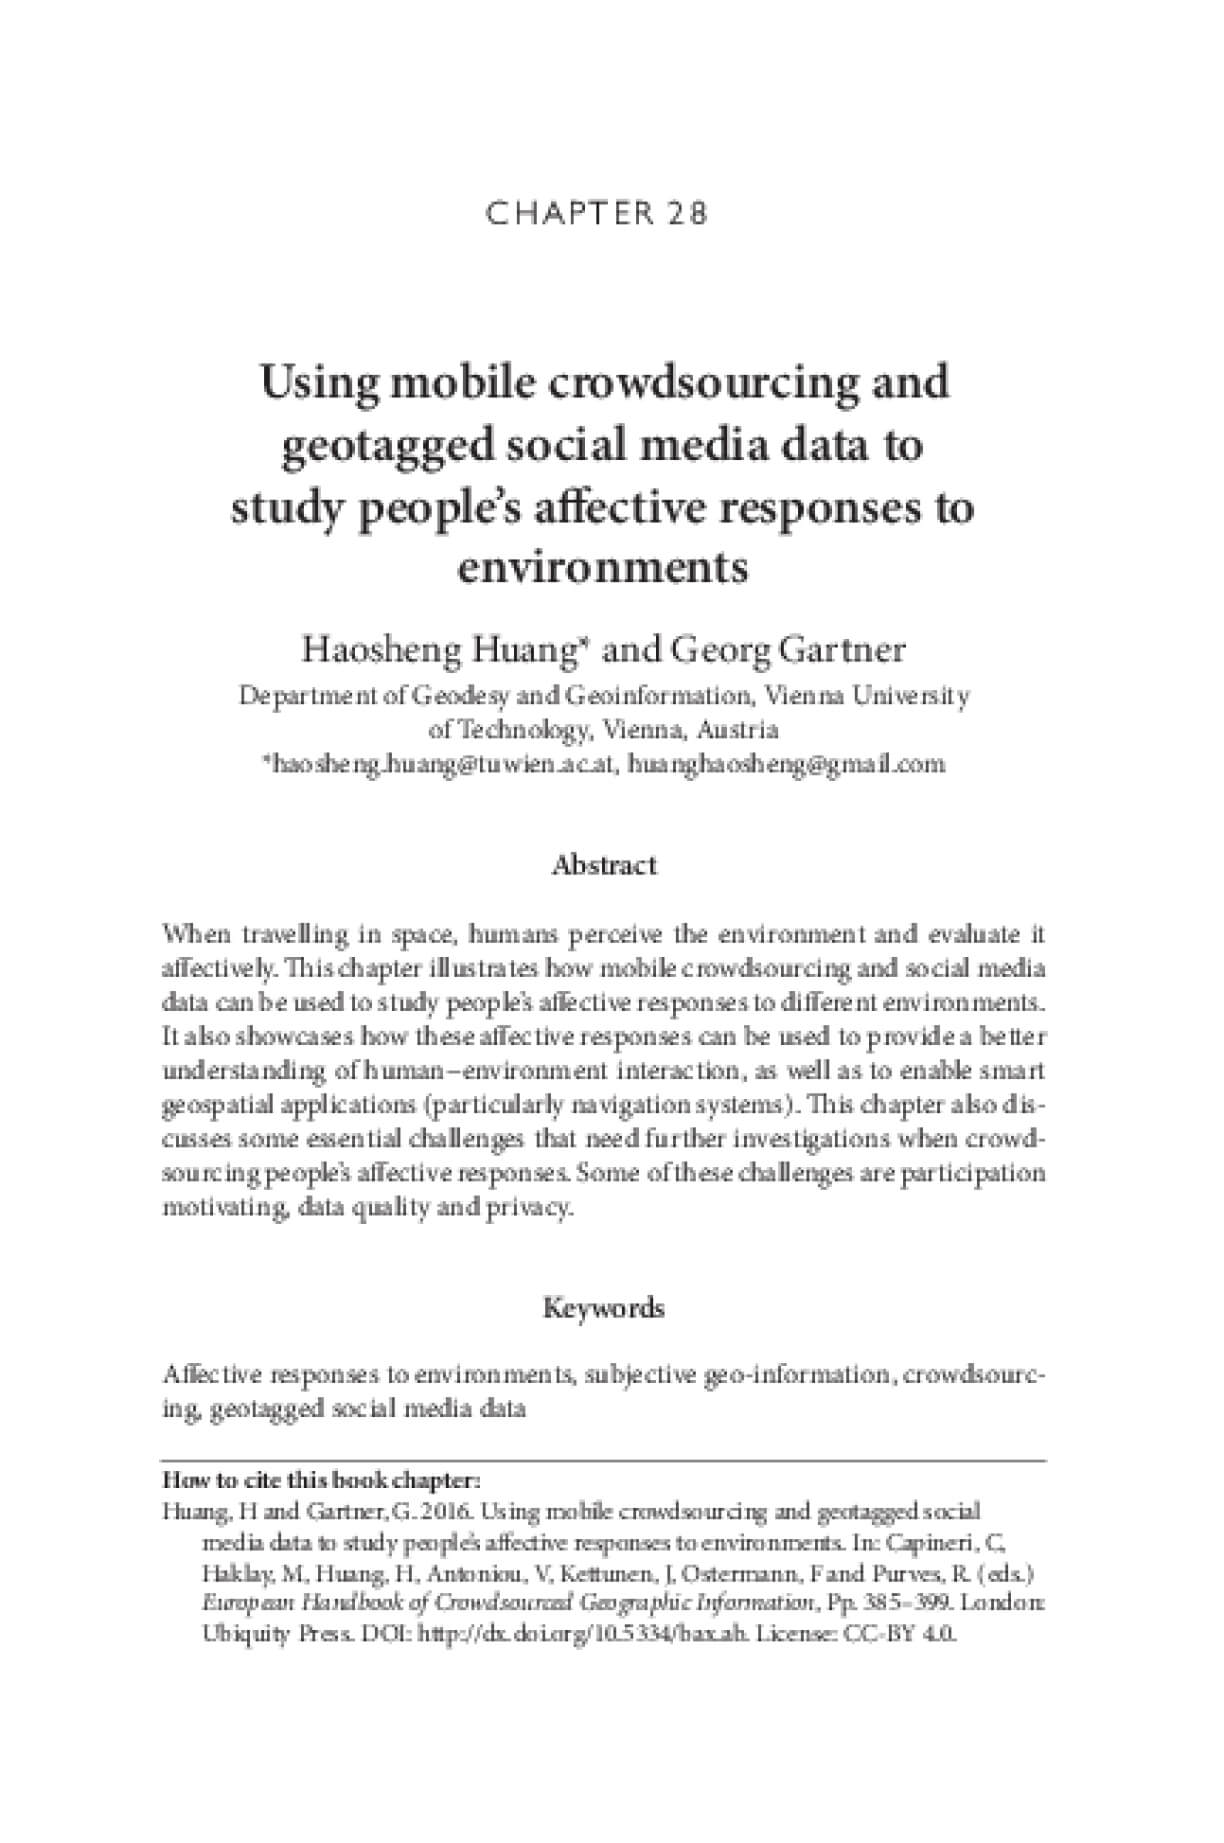 Using mobile crowdsourcing and geotagged social media data to study people's affective responses to environments